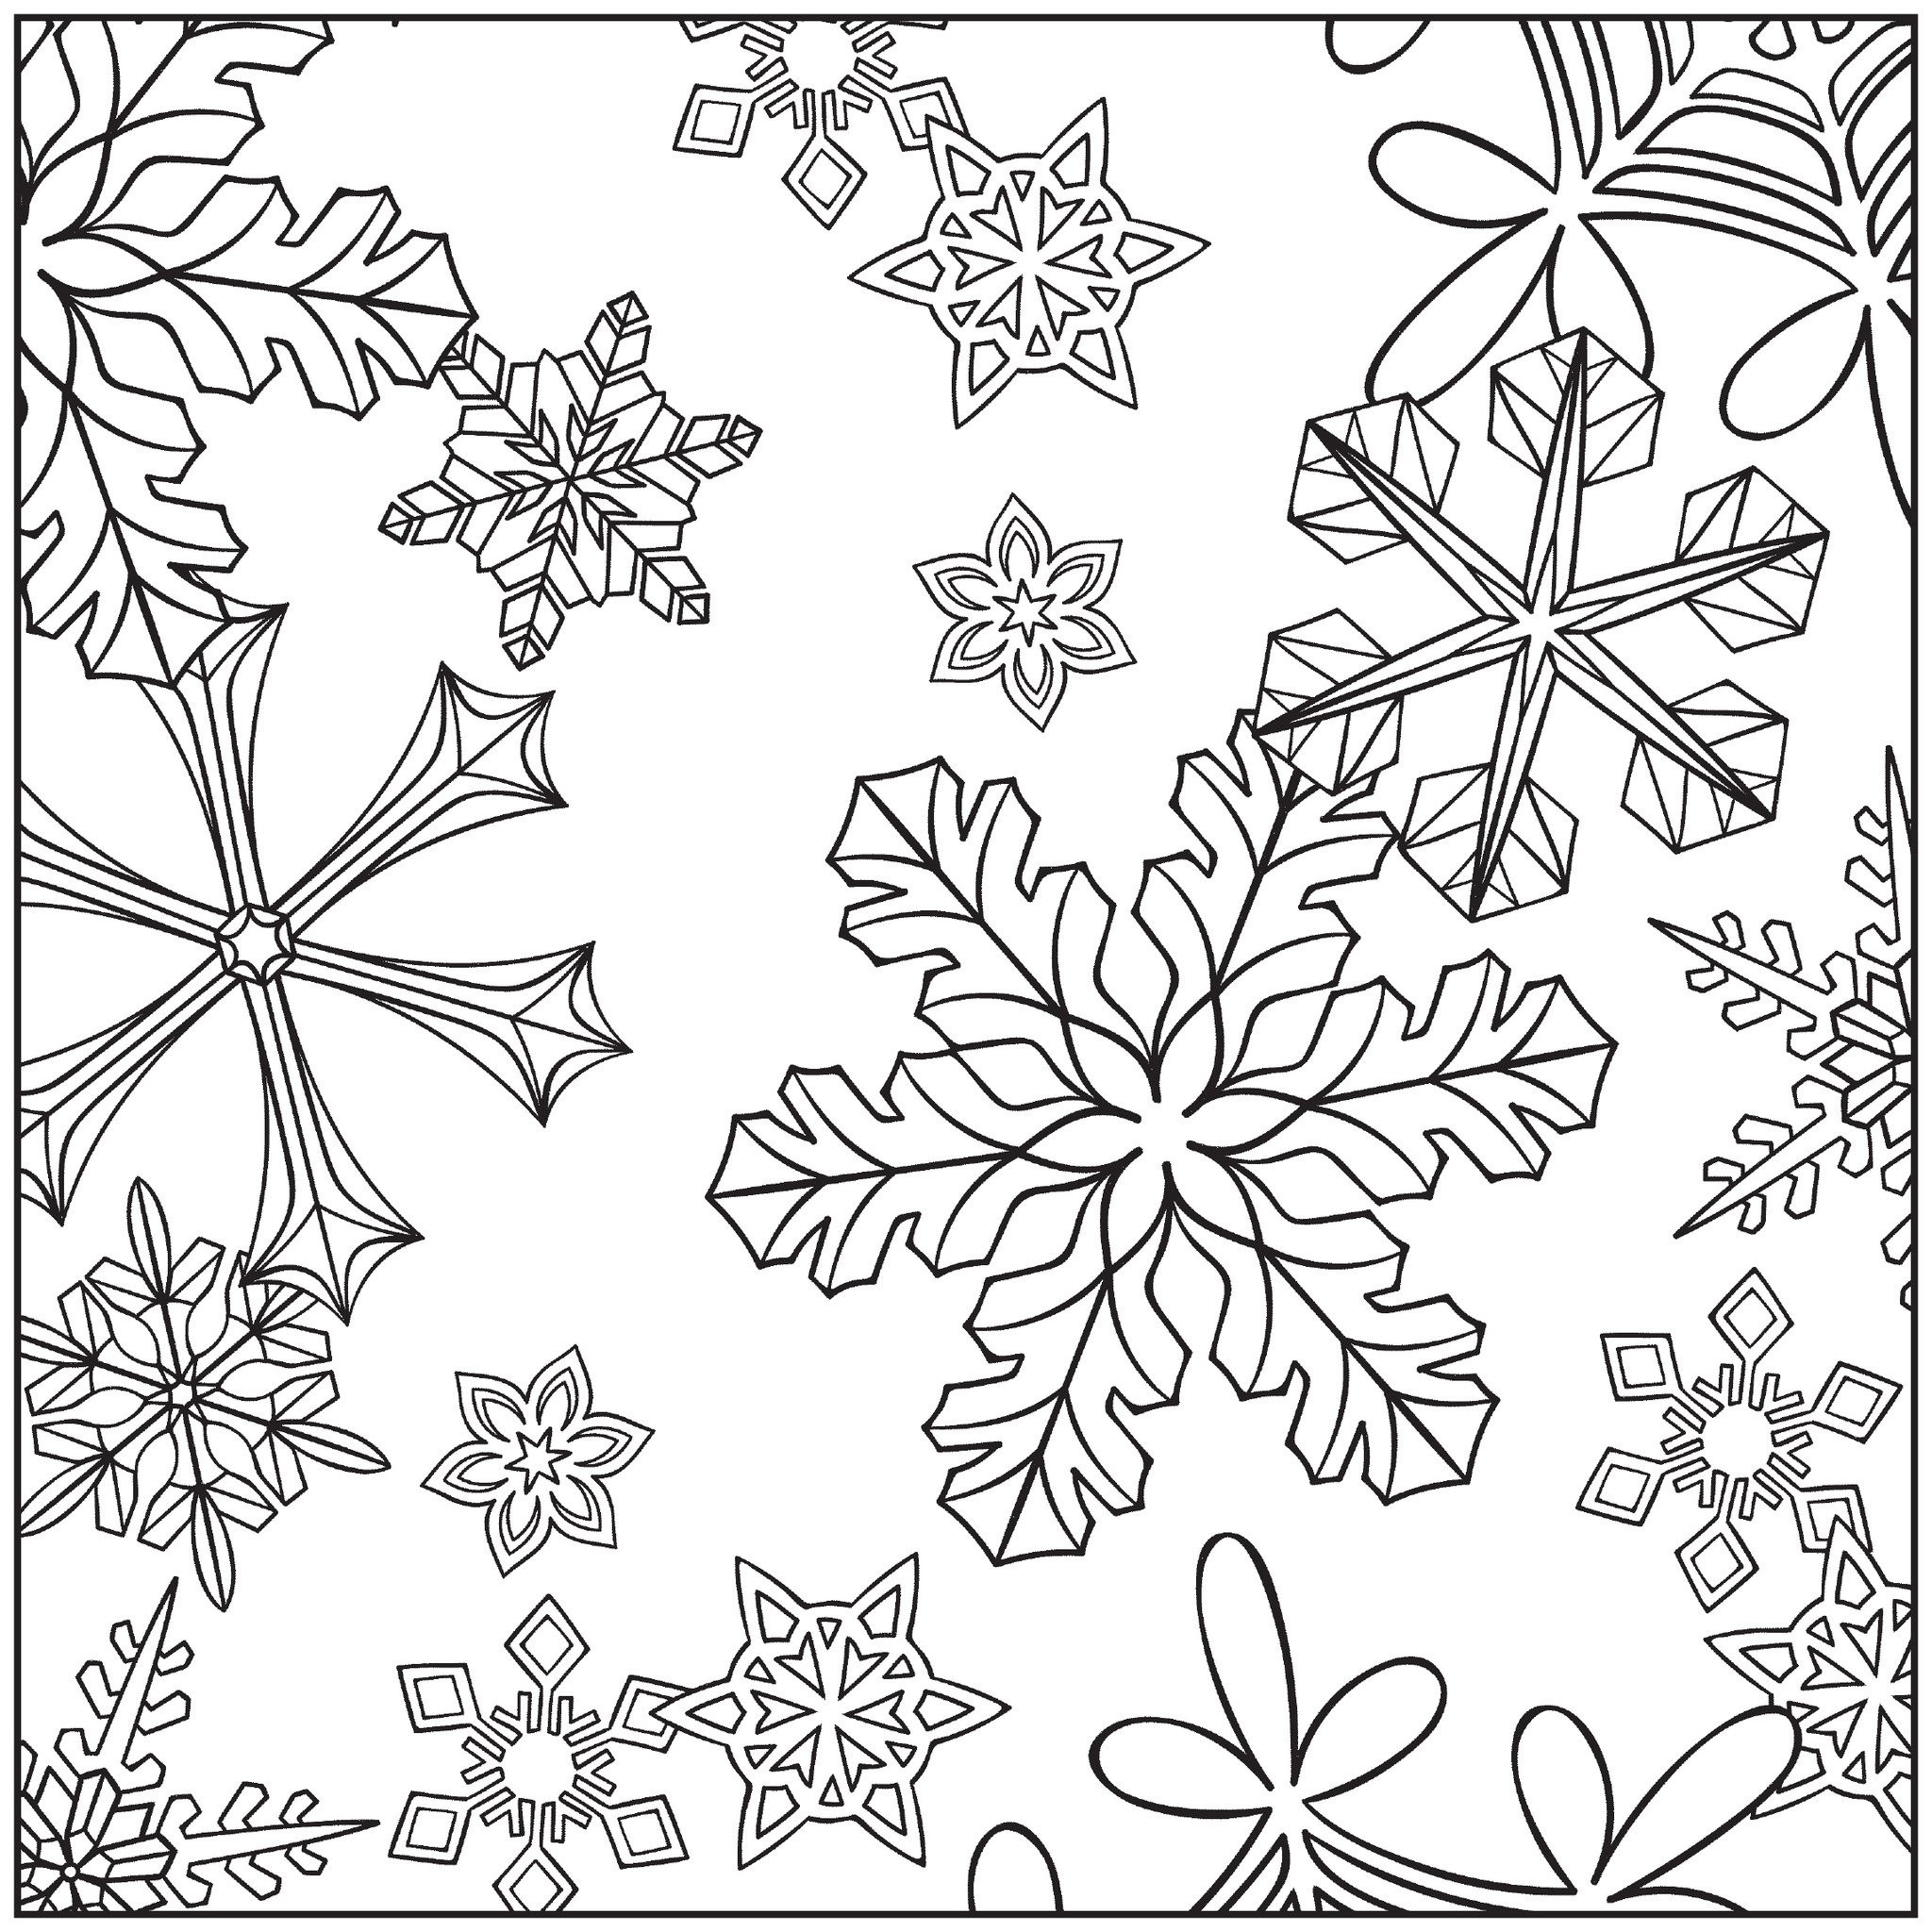 Winter Wonderland Coloring Pages  Winter Wonderland Adult Coloring Book With Relaxation CD